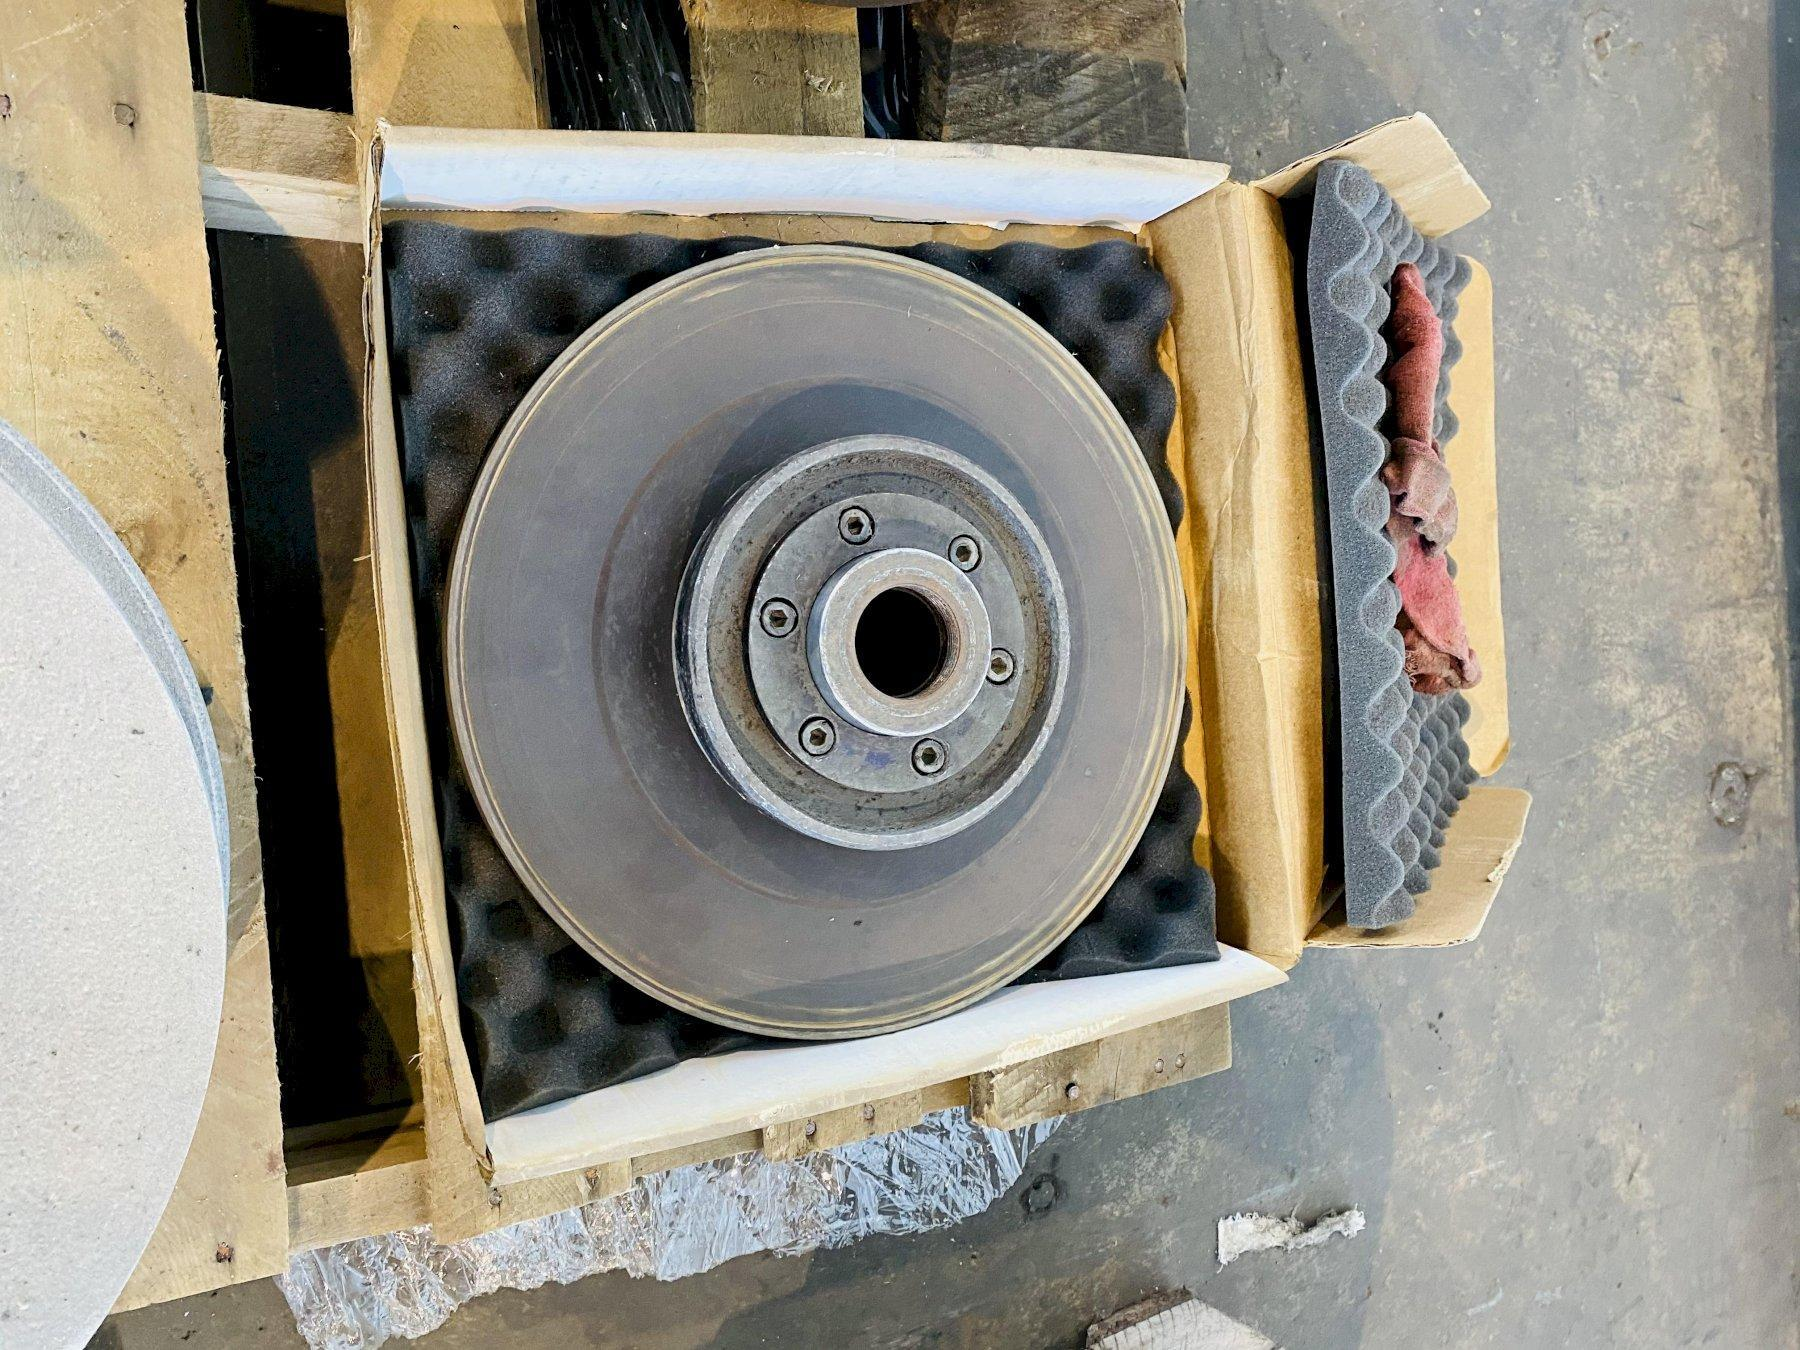 (11) SURFACE GRINDING WHEELS. STOCK # 0312621